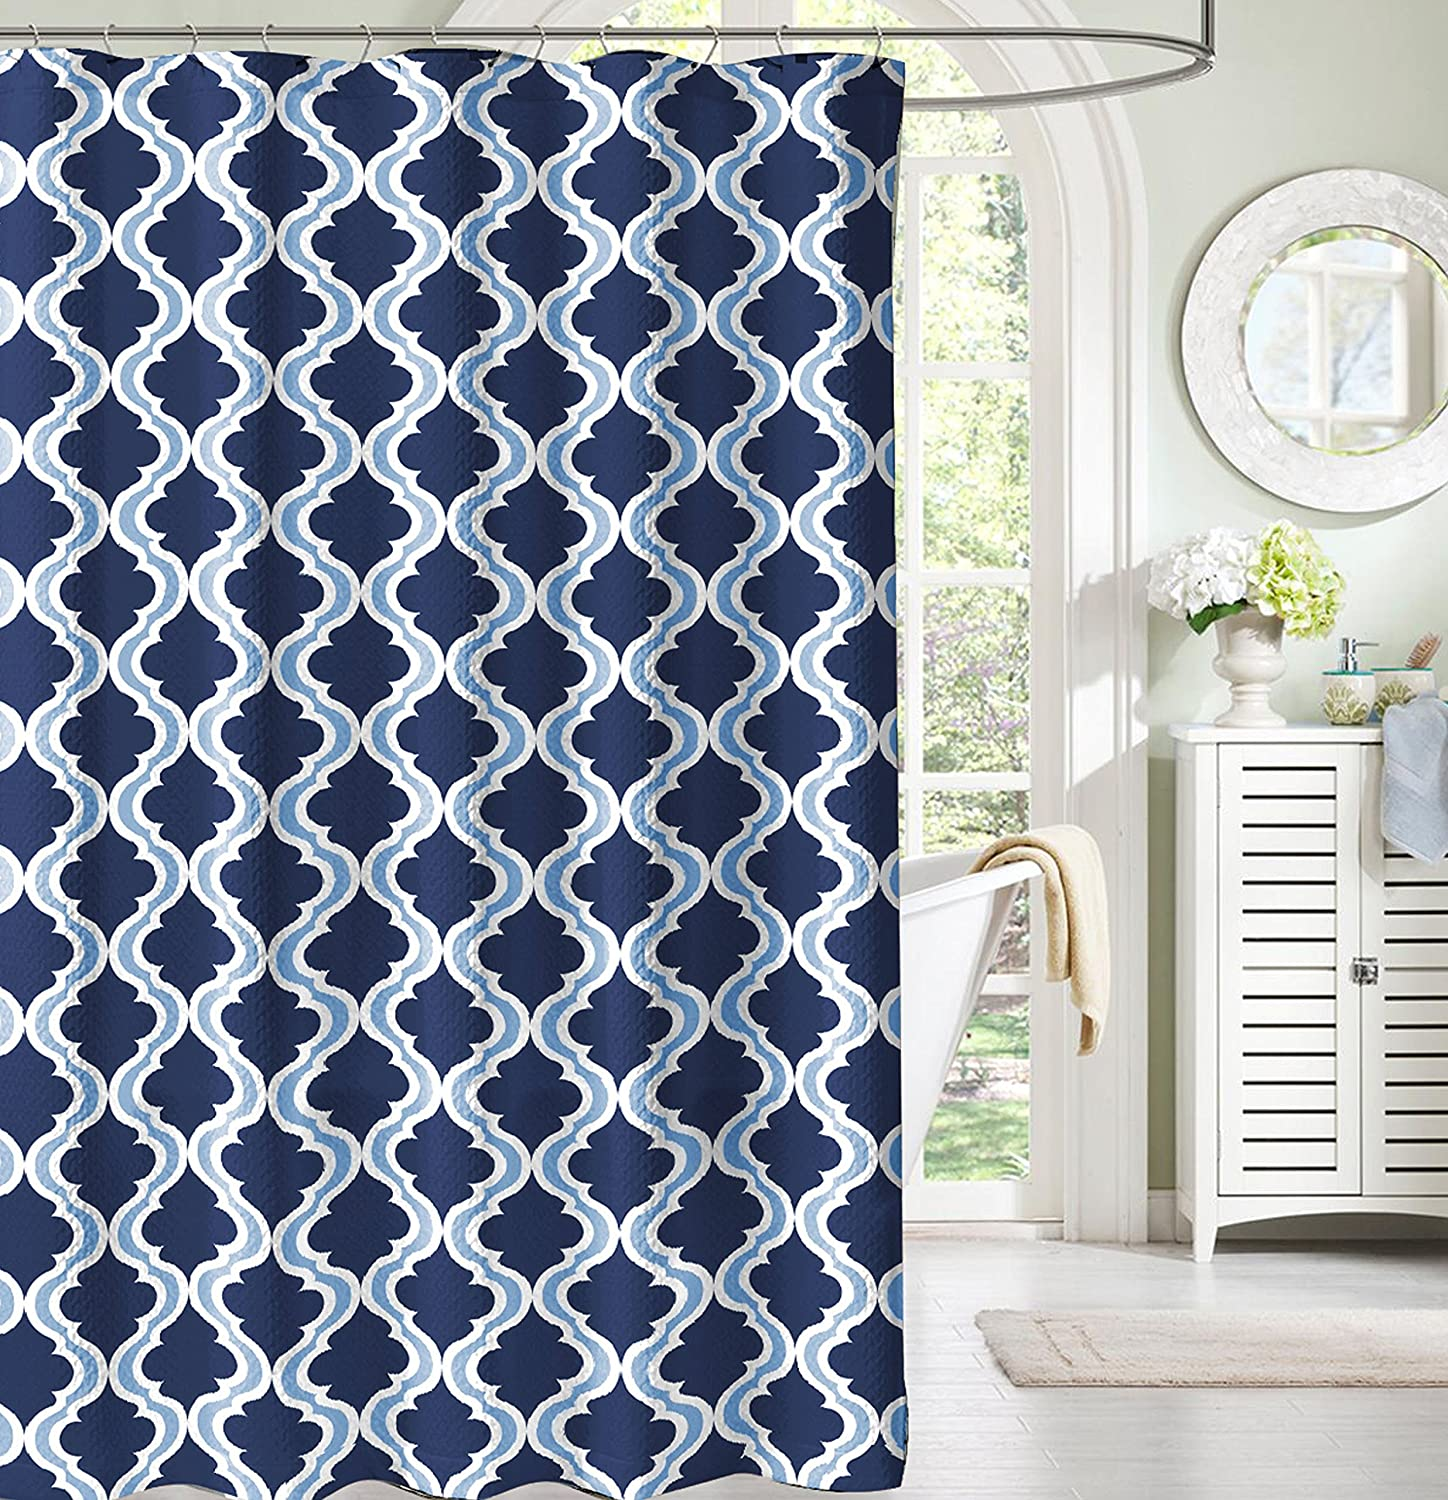 Amazon.com: Navy and Light Blue White Moroccan Fabric Shower Curtain ...